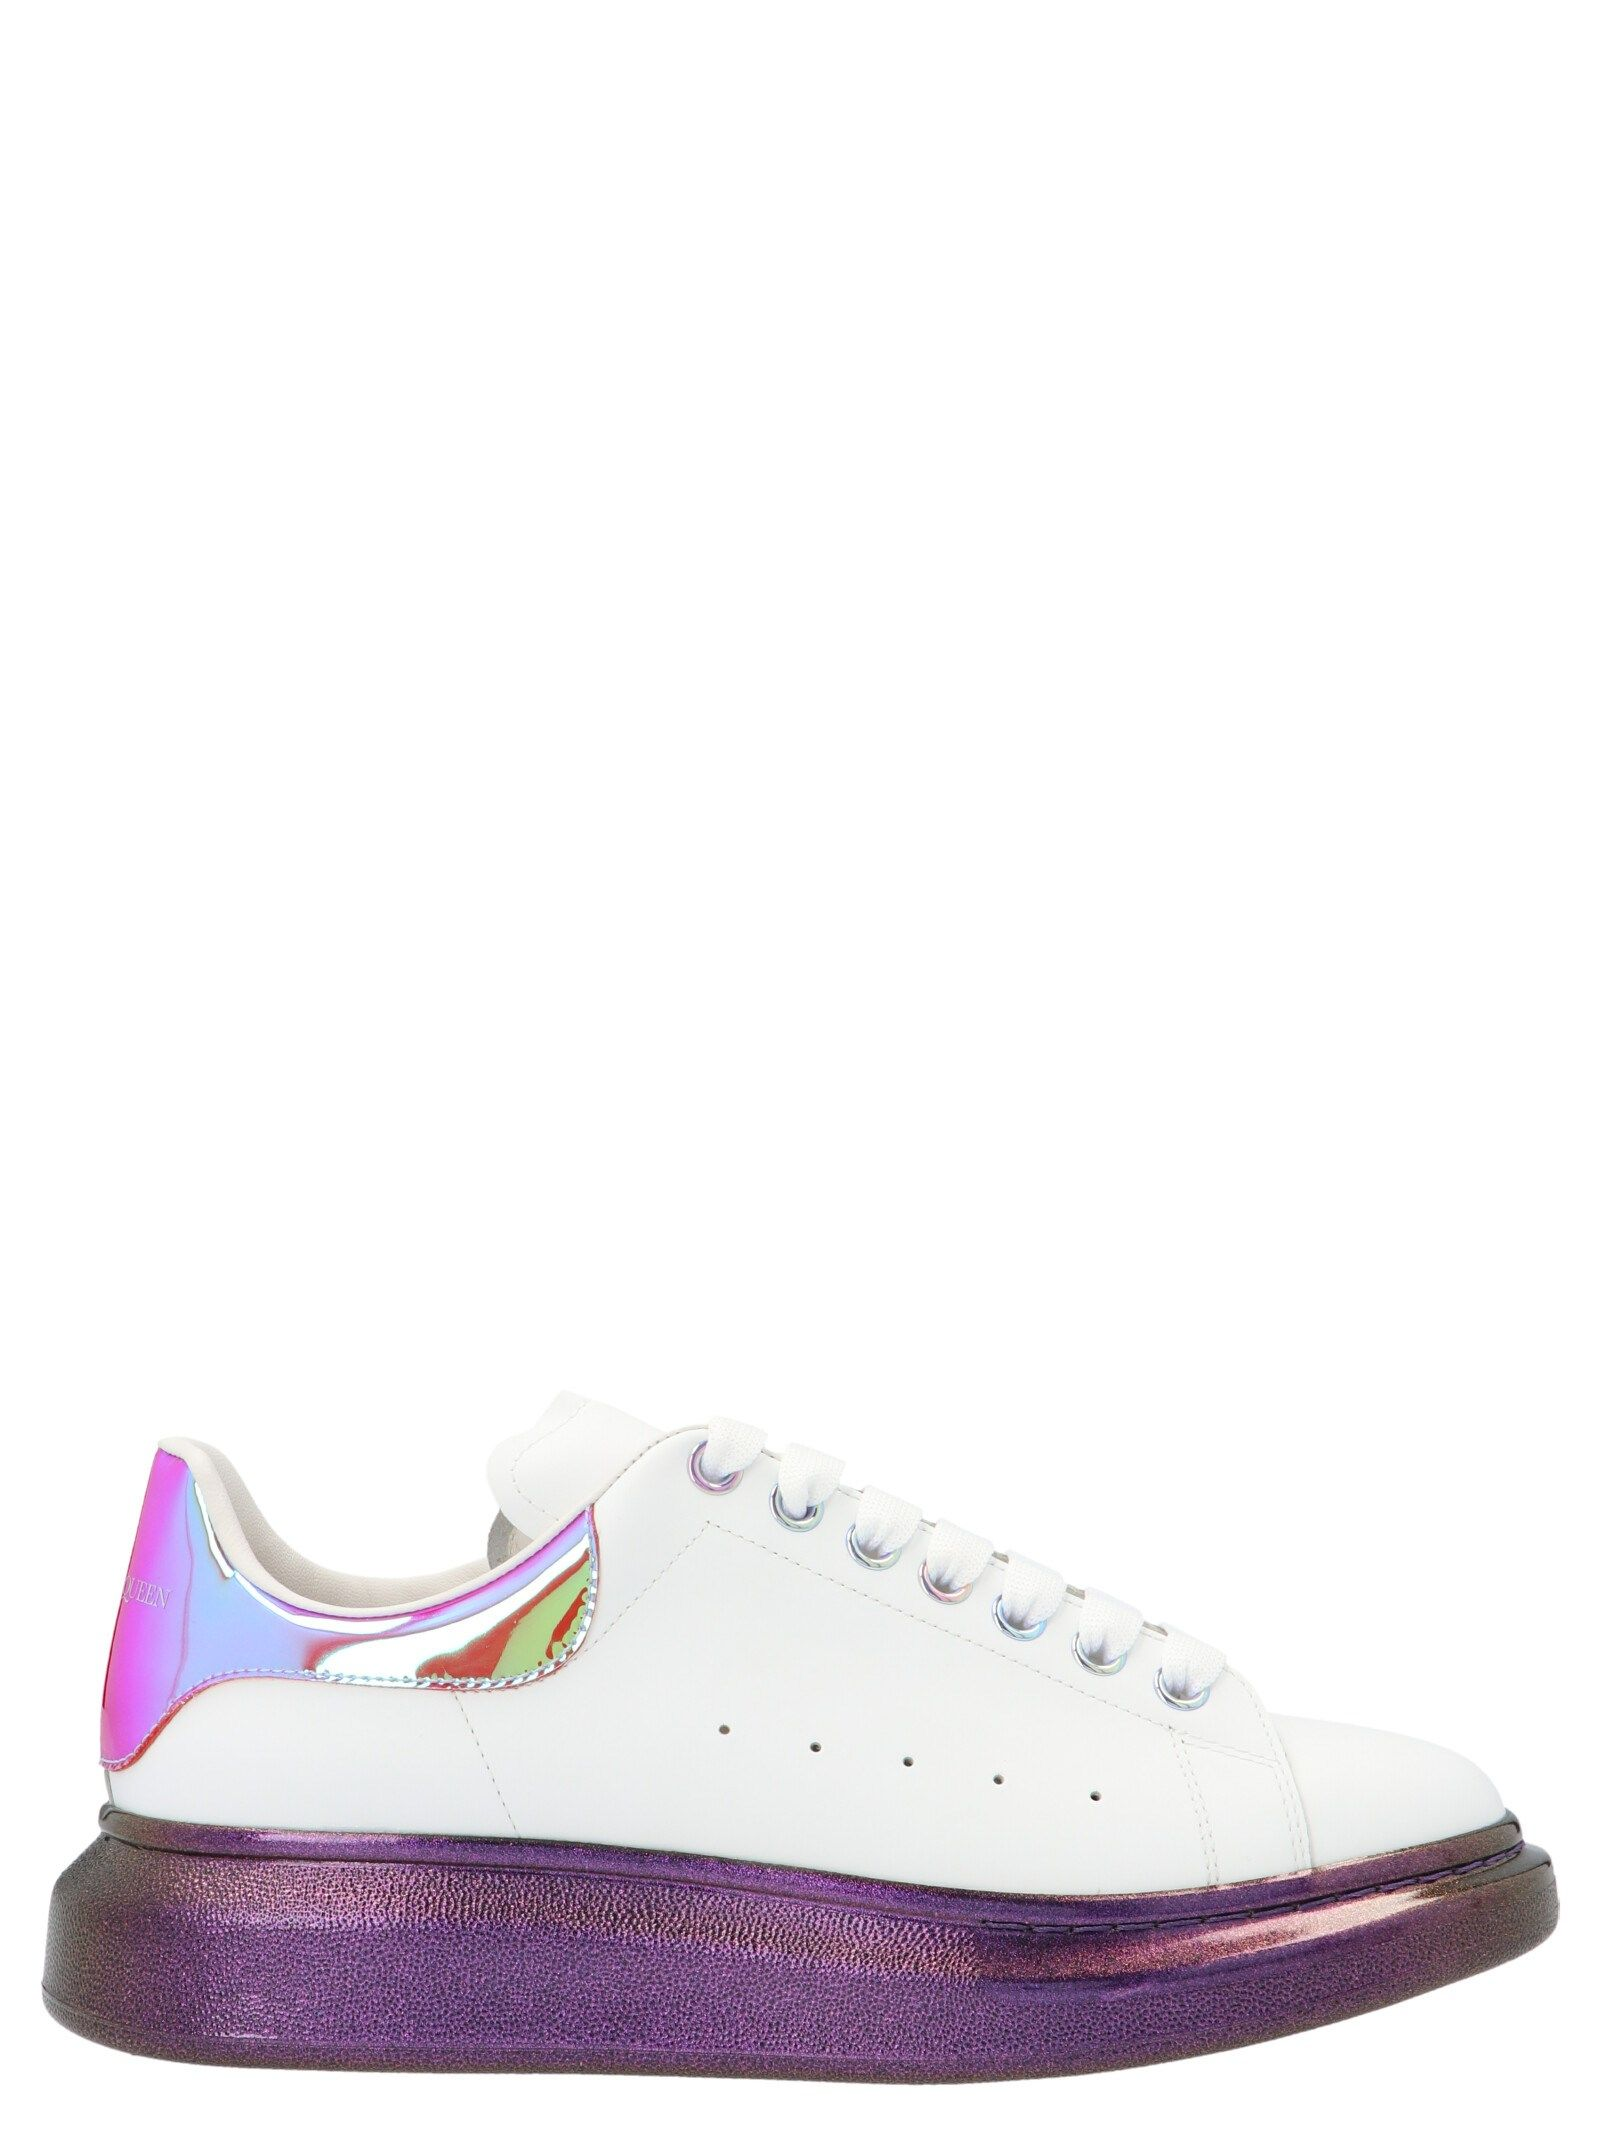 ALEXANDER MCQUEEN ALEXANDER MCQUEEN MEN'S PURPLE OTHER MATERIALS SNEAKERS